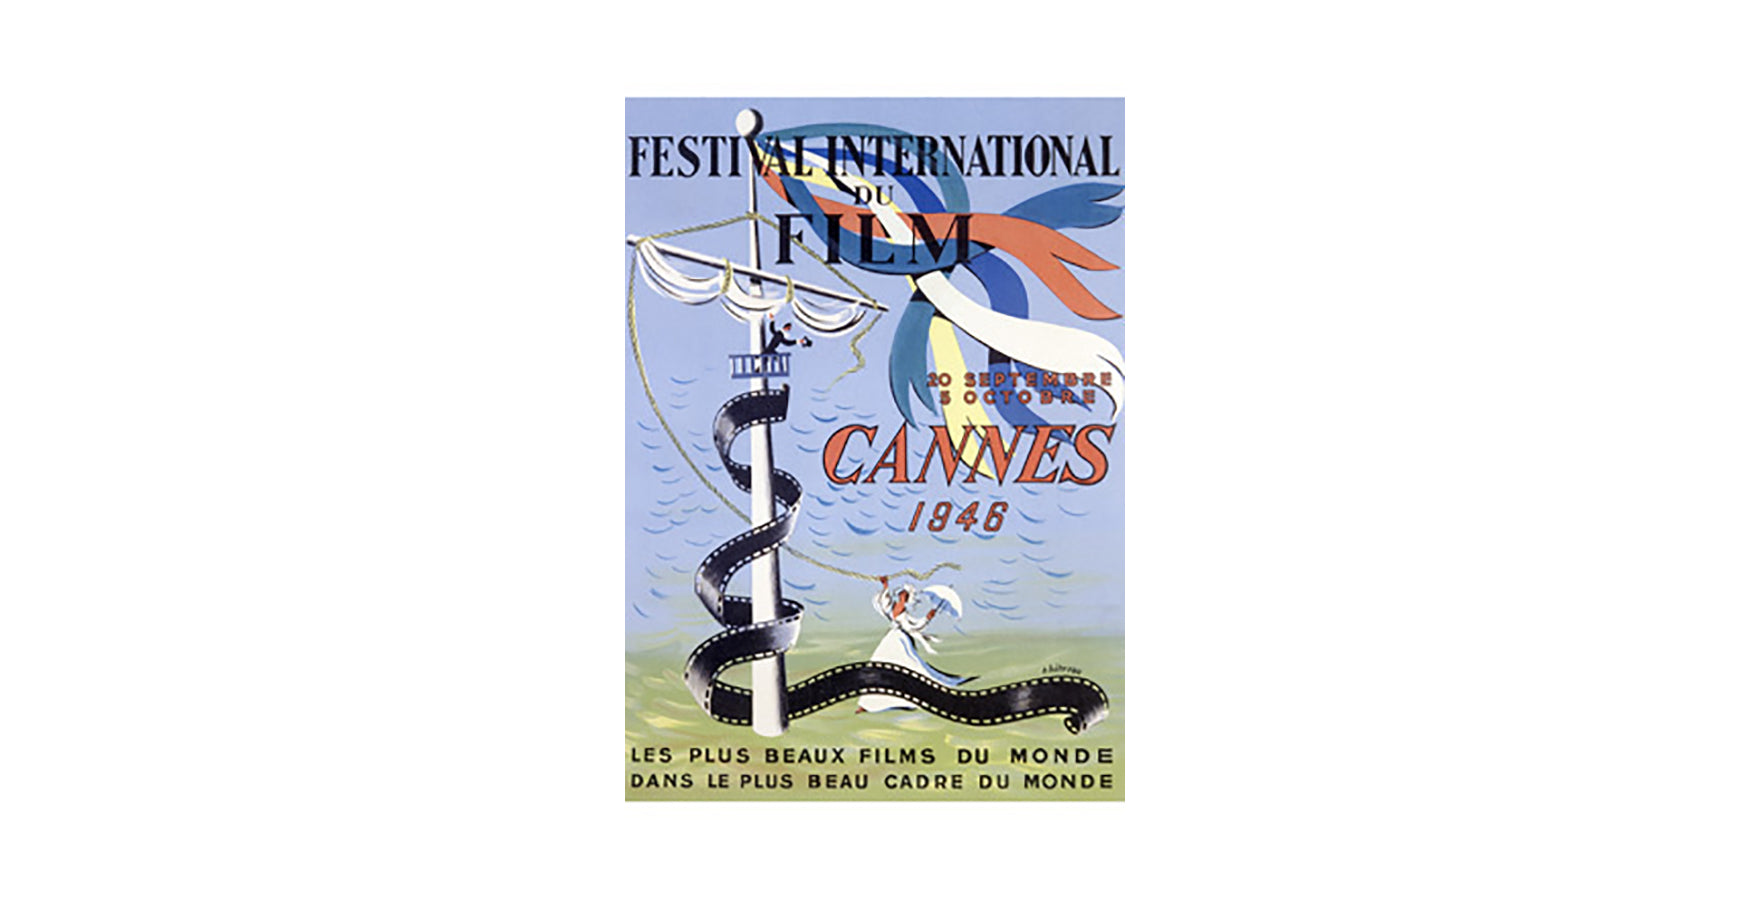 The First Festival de Cannes - Histoires de Parfums